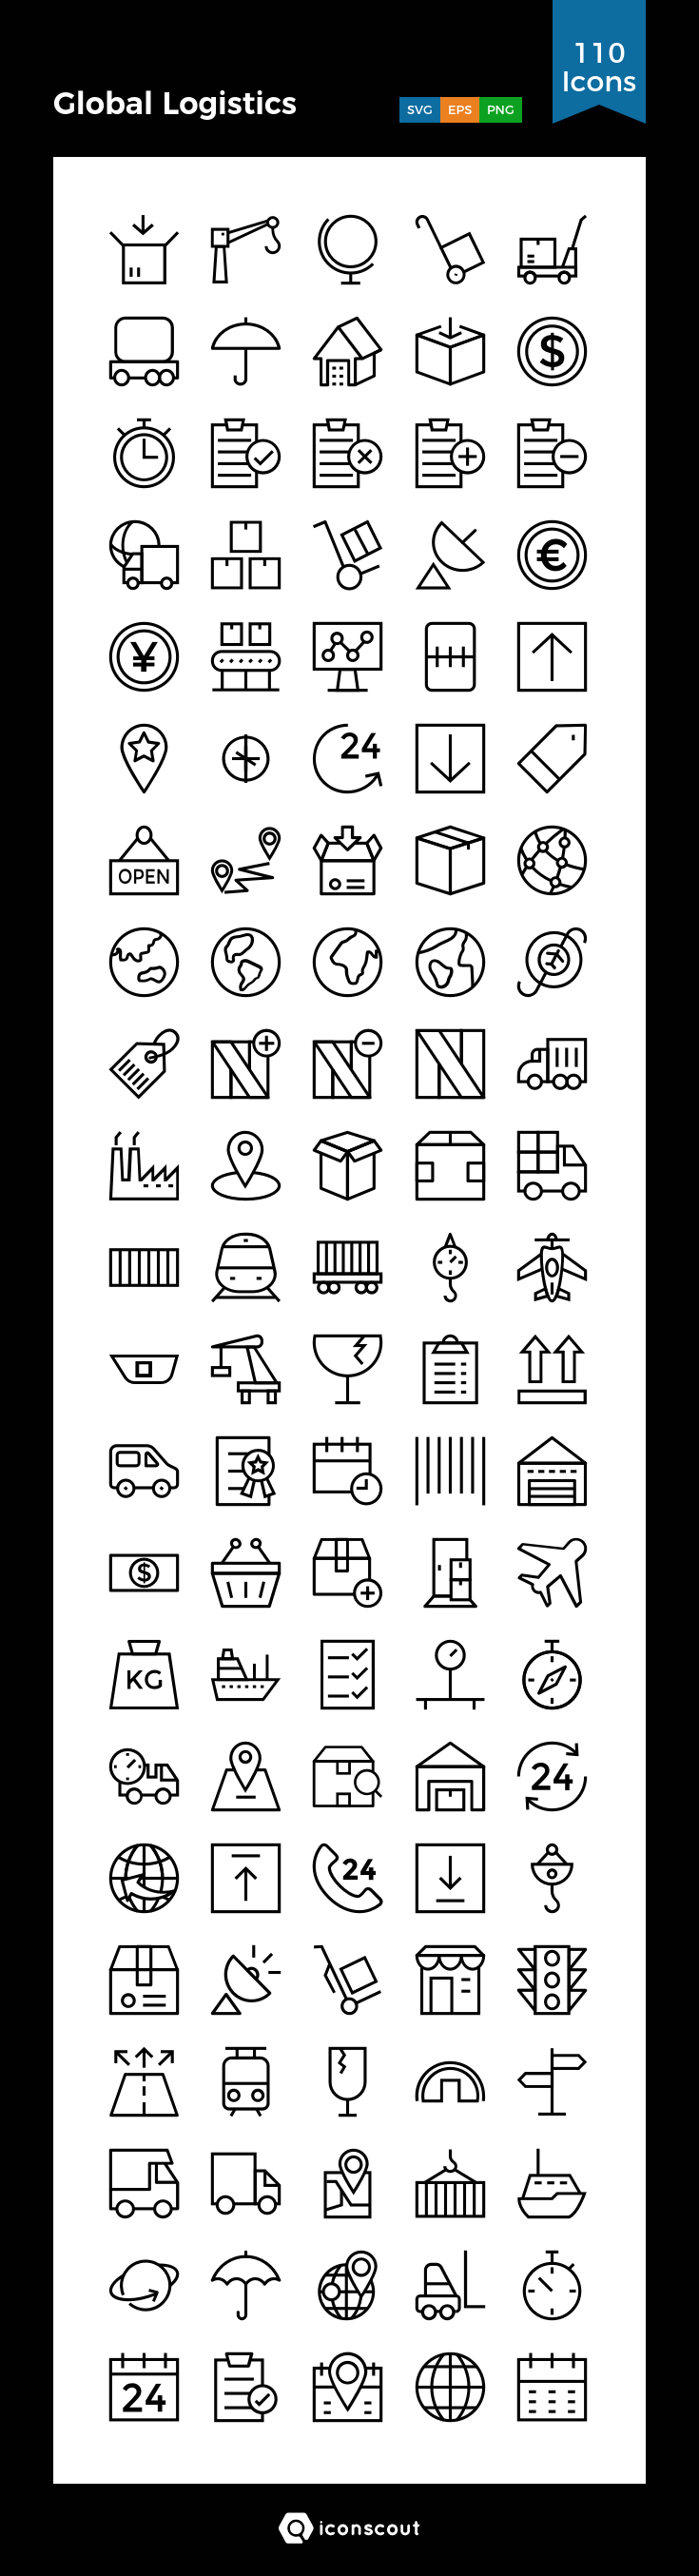 Download Global Logistics Icon Pack Available In Svg Png Eps Ai Icon Fonts Logistics Design Icon Text Graphics